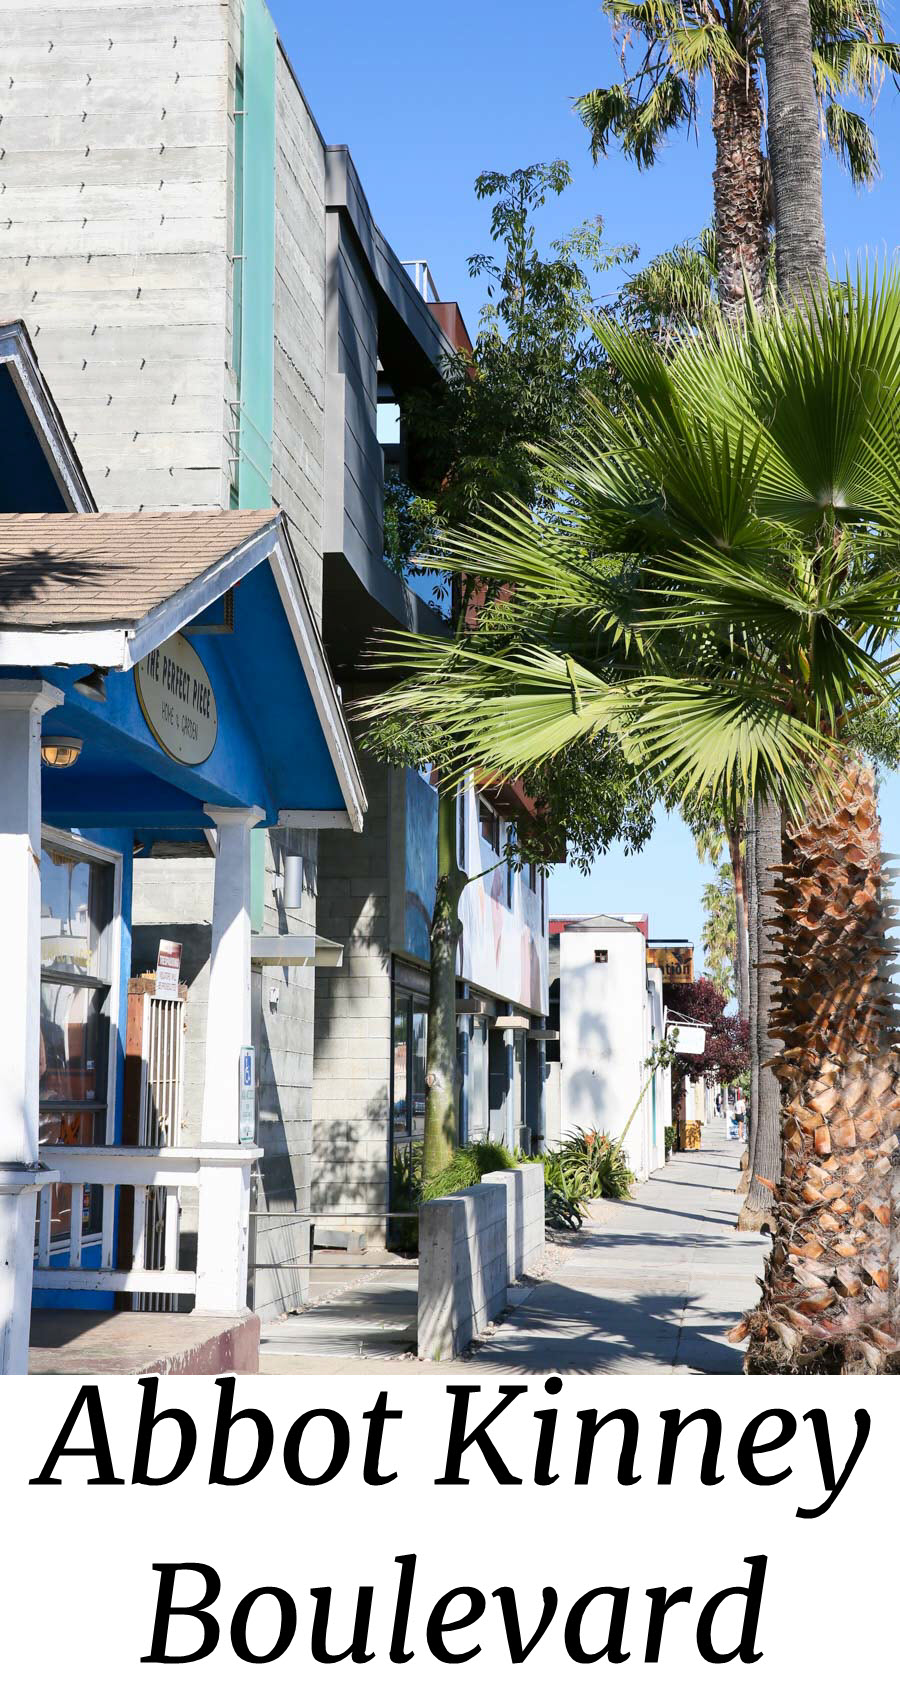 Local's Guide to Abbot Kinney. What to Do, Where to Eat in Venice. #losangeles #venice #travel #travelguide #lablogger #california #southerncalifornai #socal #lpworldtravel.